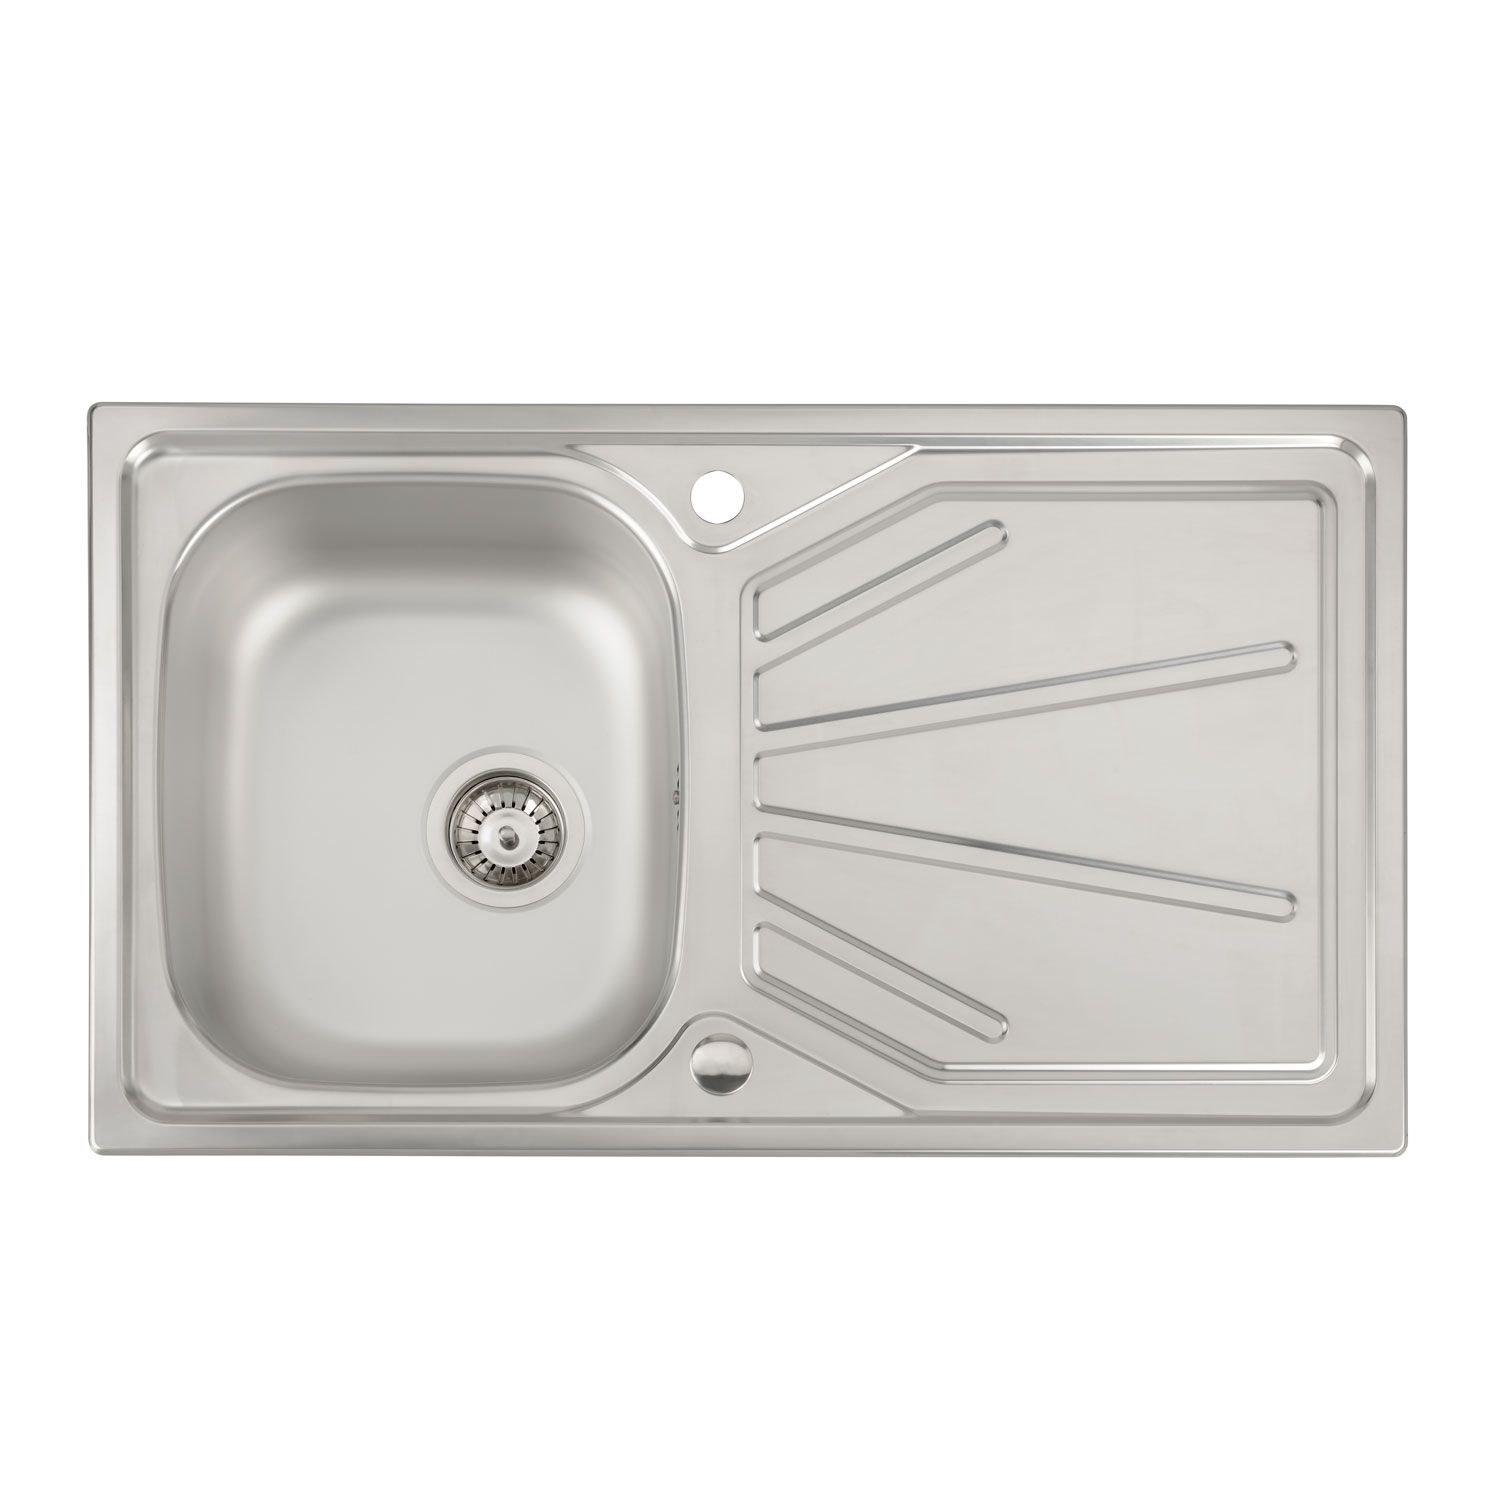 trydent compact 10 bowl kitchen sink - Compact Kitchen Sink